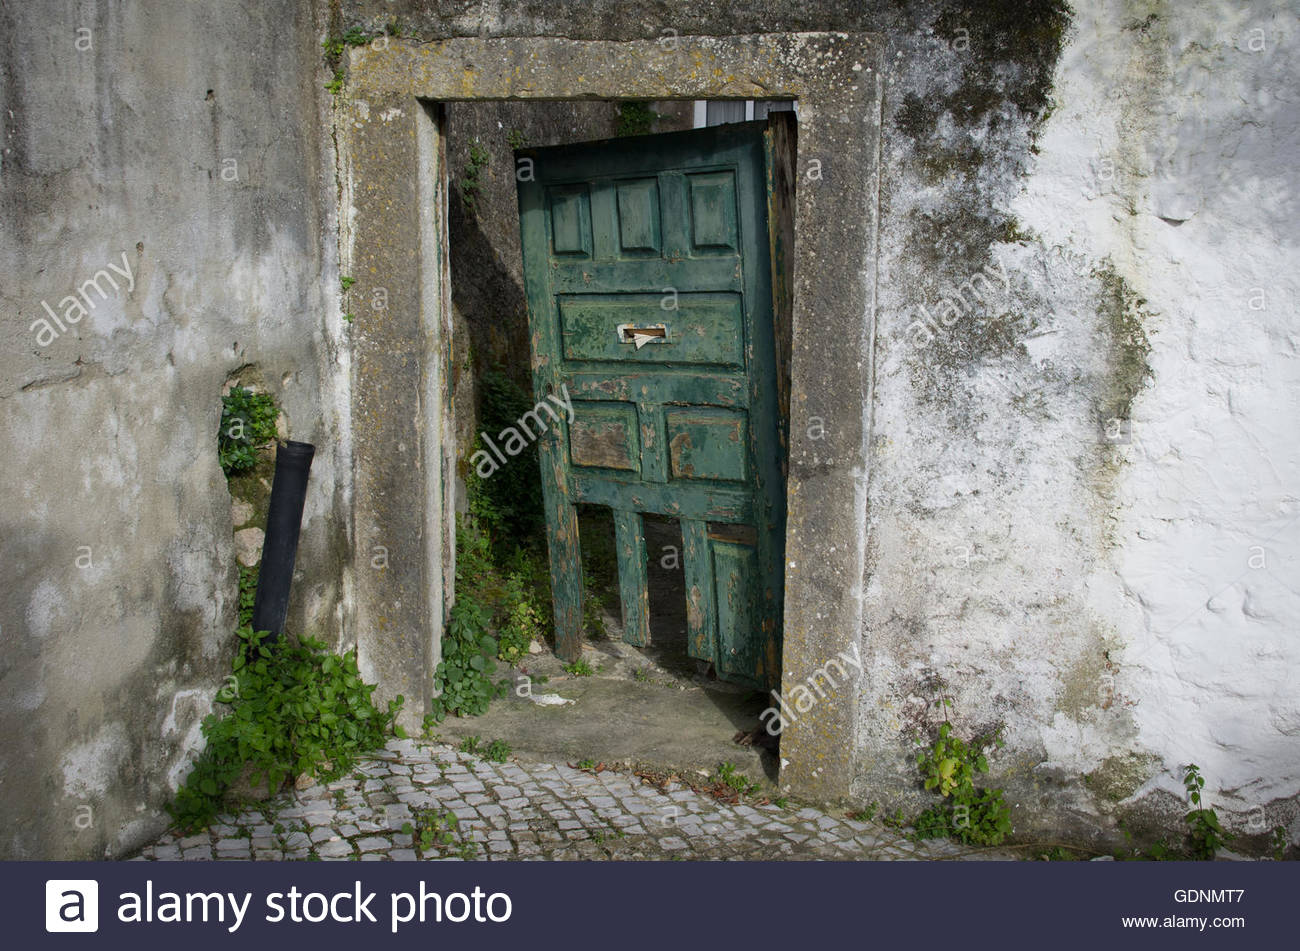 Behind The Green Door Pics behind the green door stock photo: 111730087 - alamy